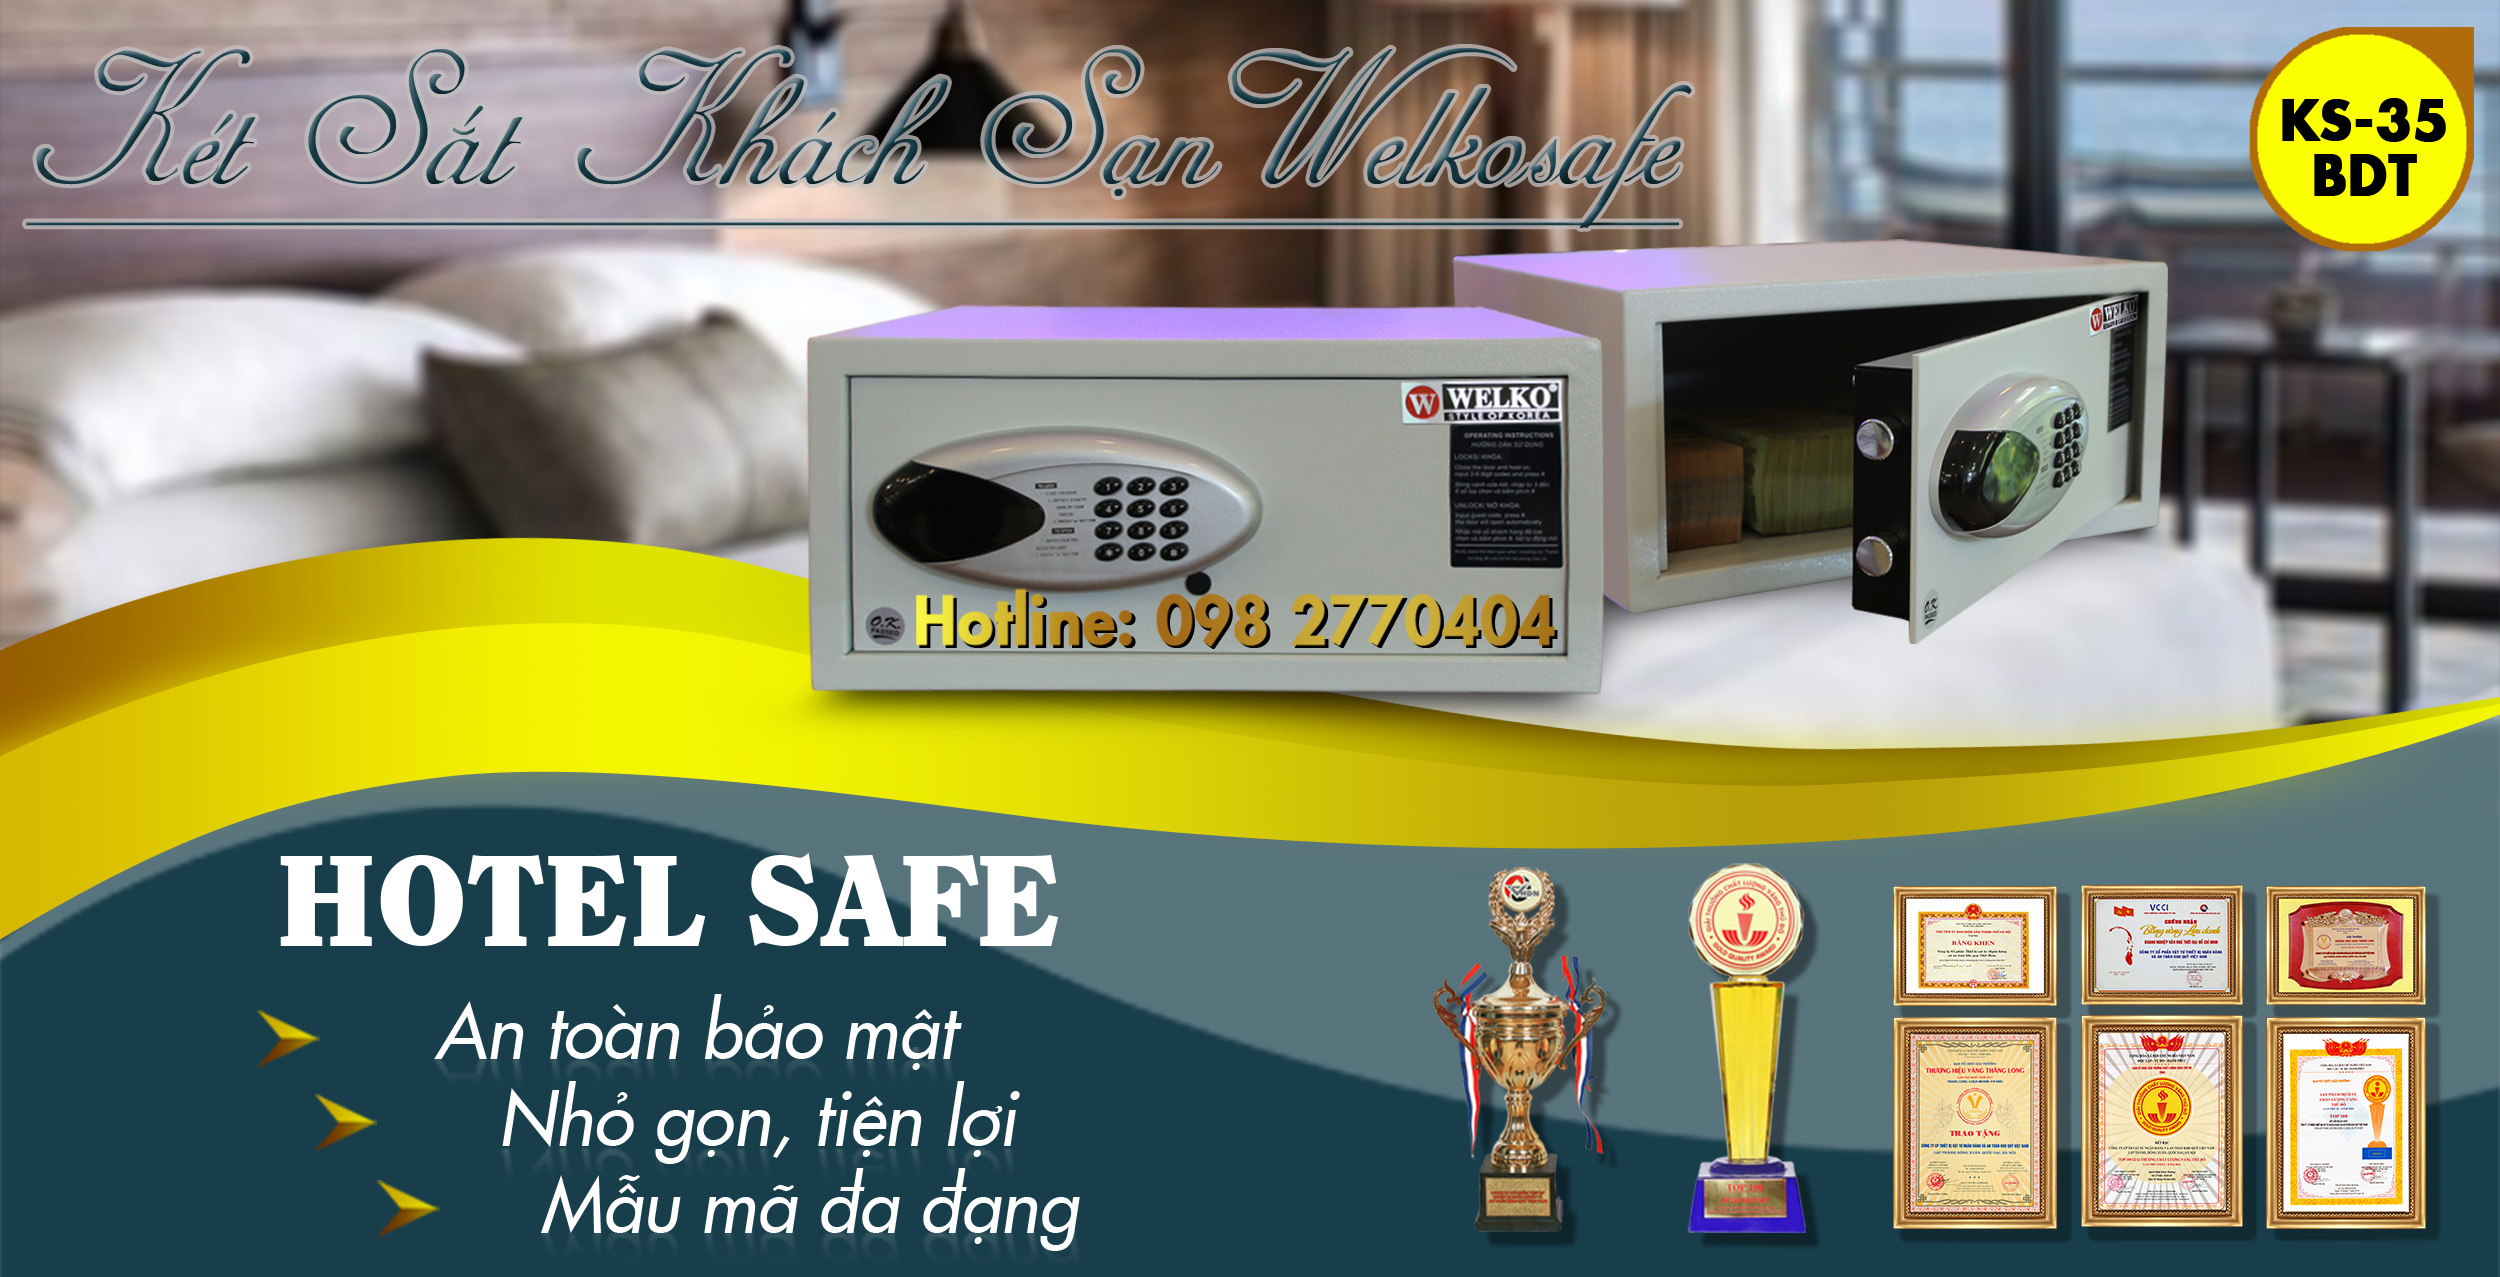 digital hotel safe locker for